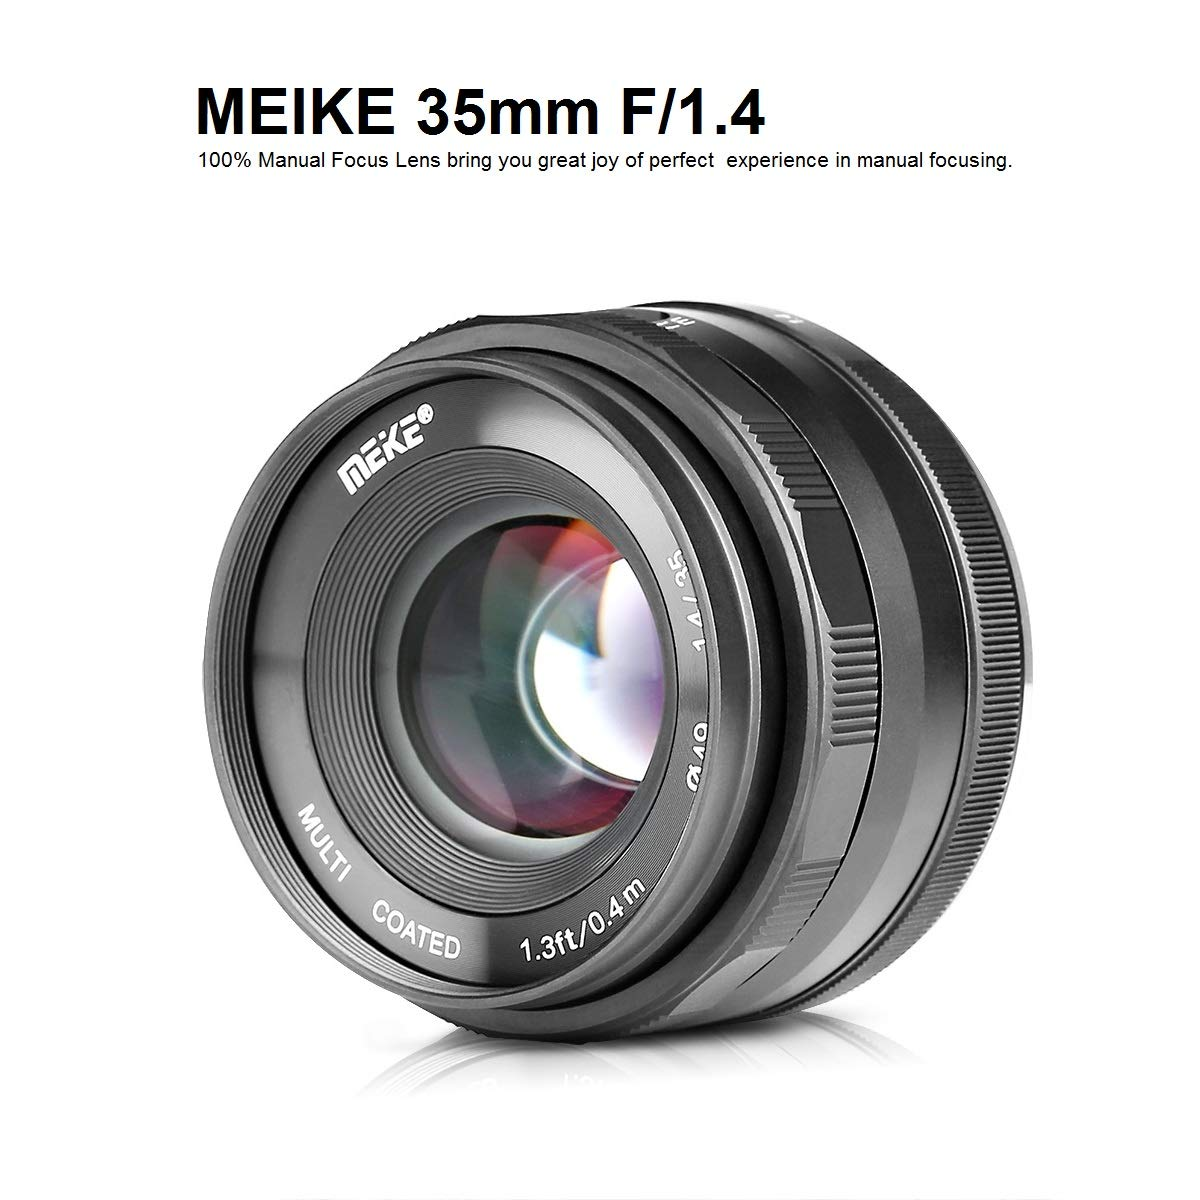 MEIKE MK-35mm F/1.4 Manual Focus Large Aperture Lens Compatible with Fujifilm Mirrorless Camera Such as X-T1 X-T2 X-T3 by Meike